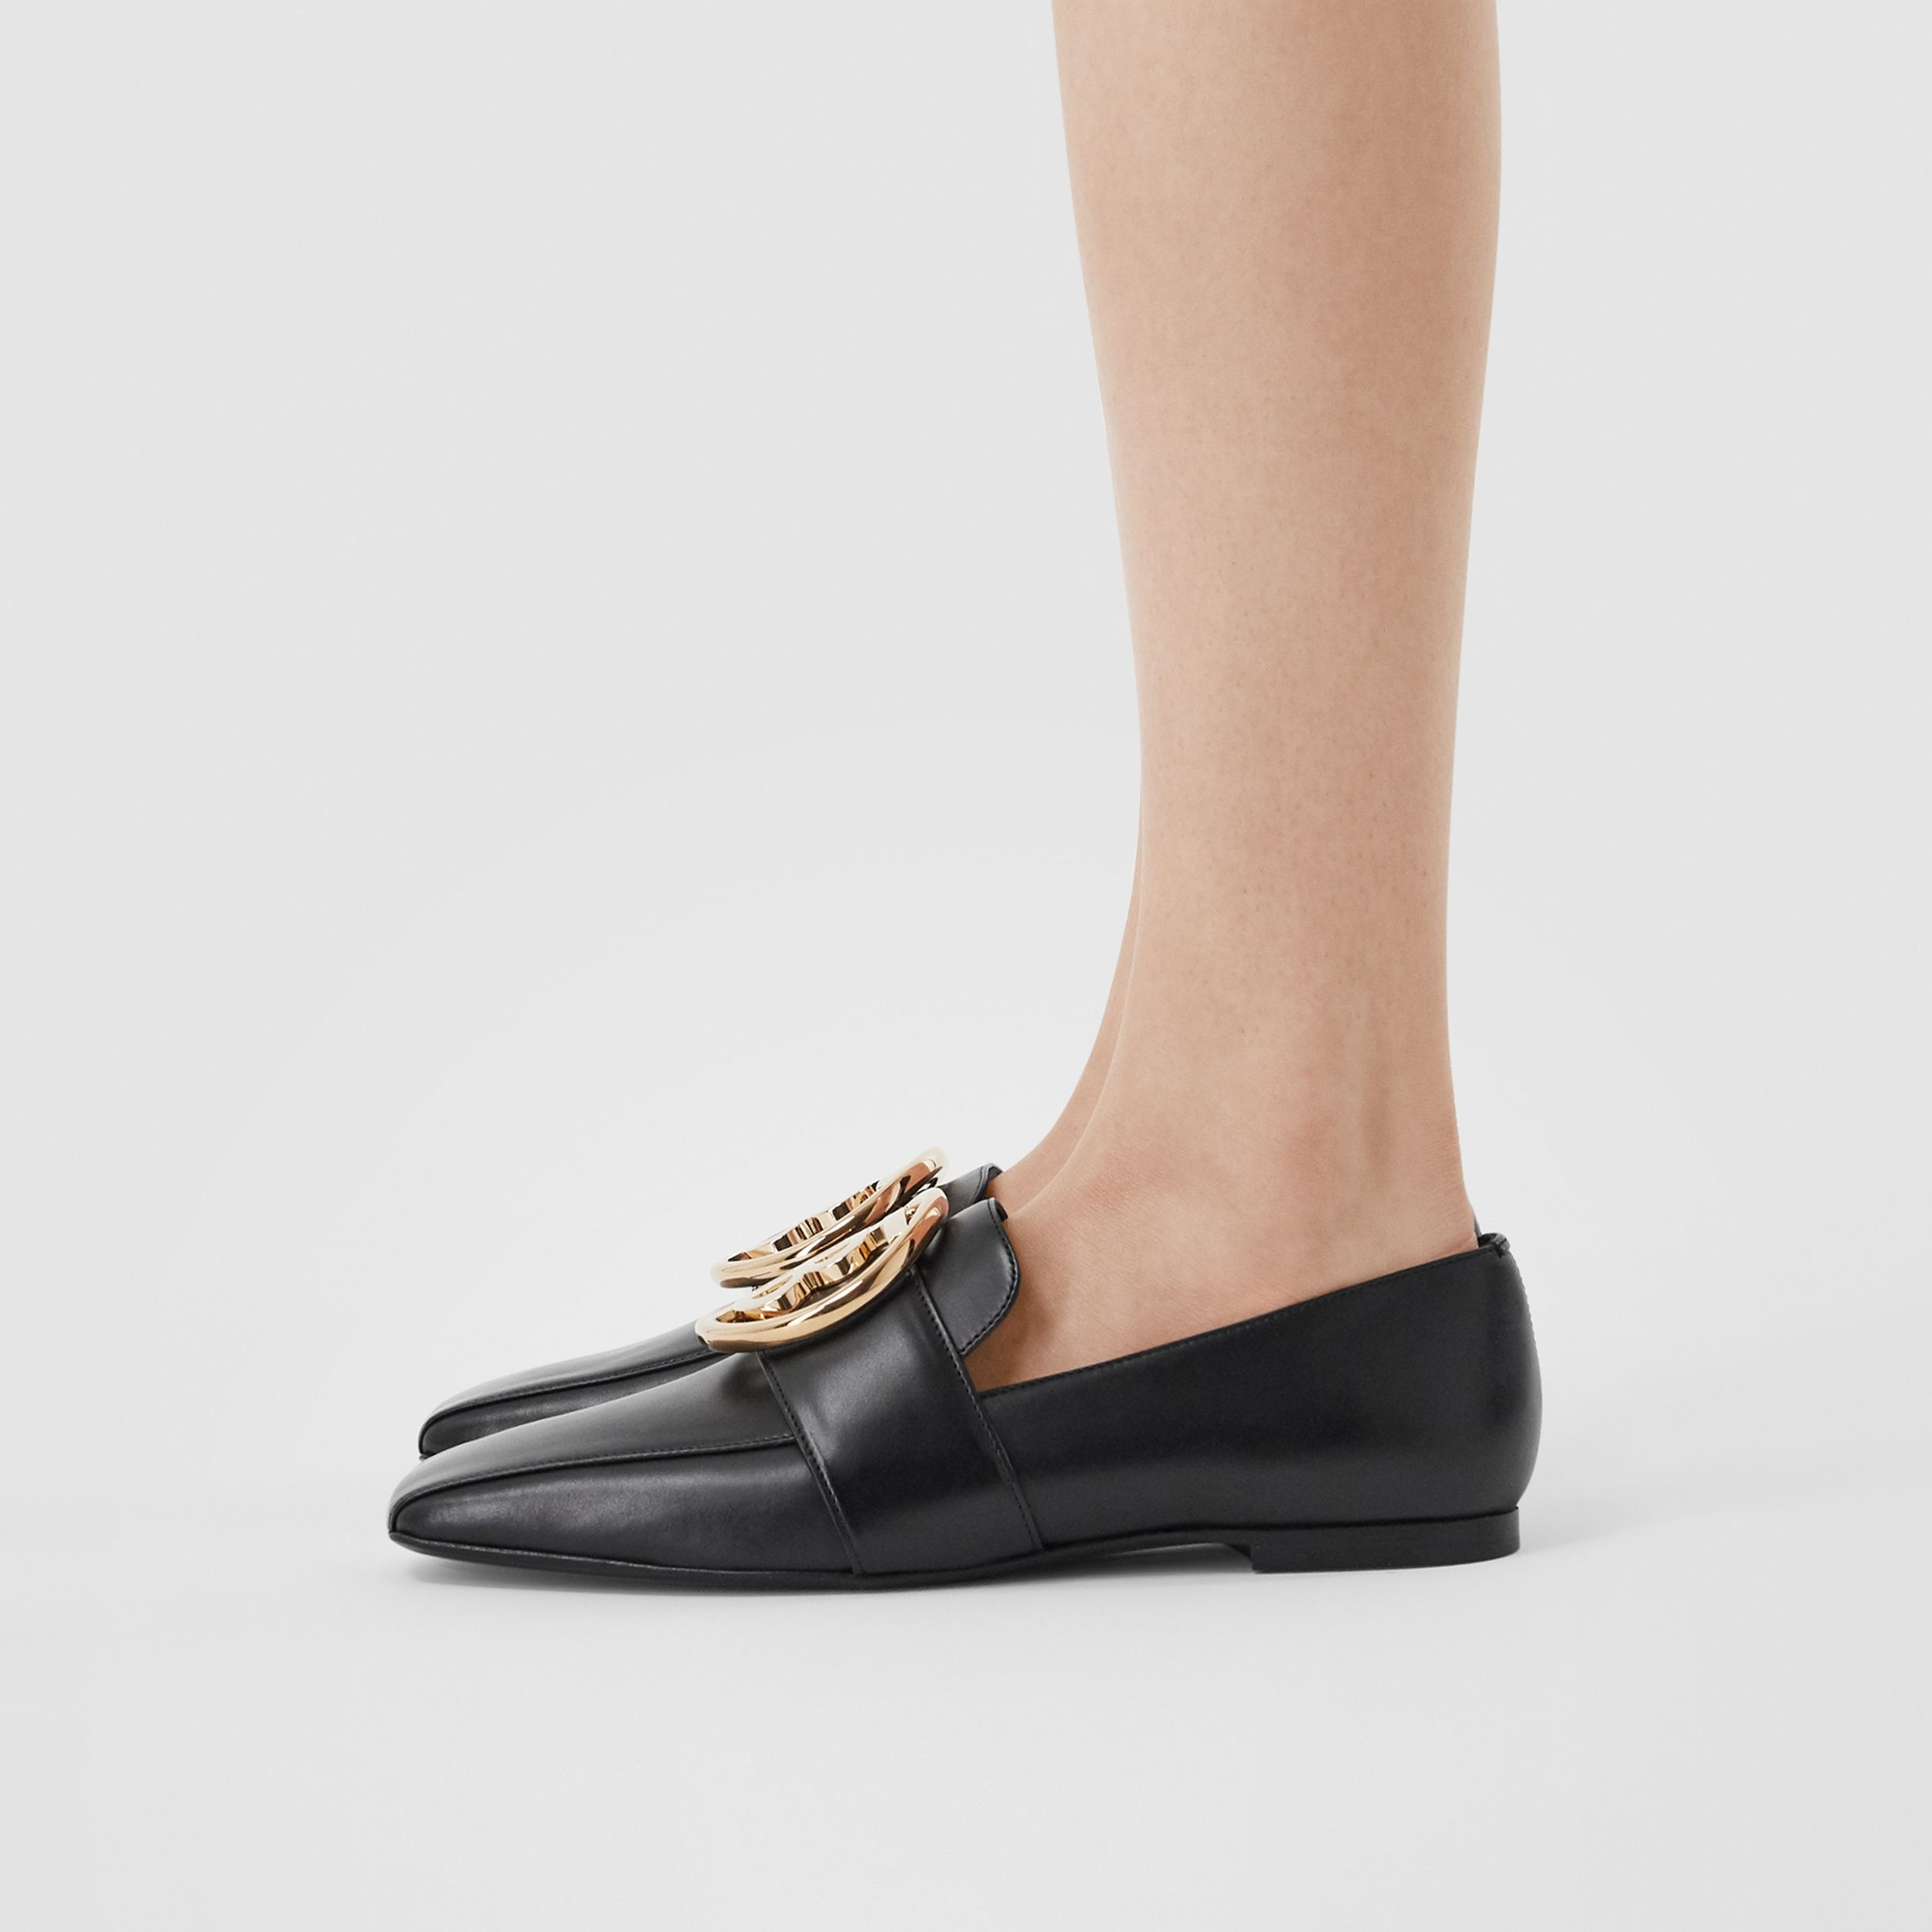 Monogram Motif Leather Loafers in Black - Women | Burberry United States - 3